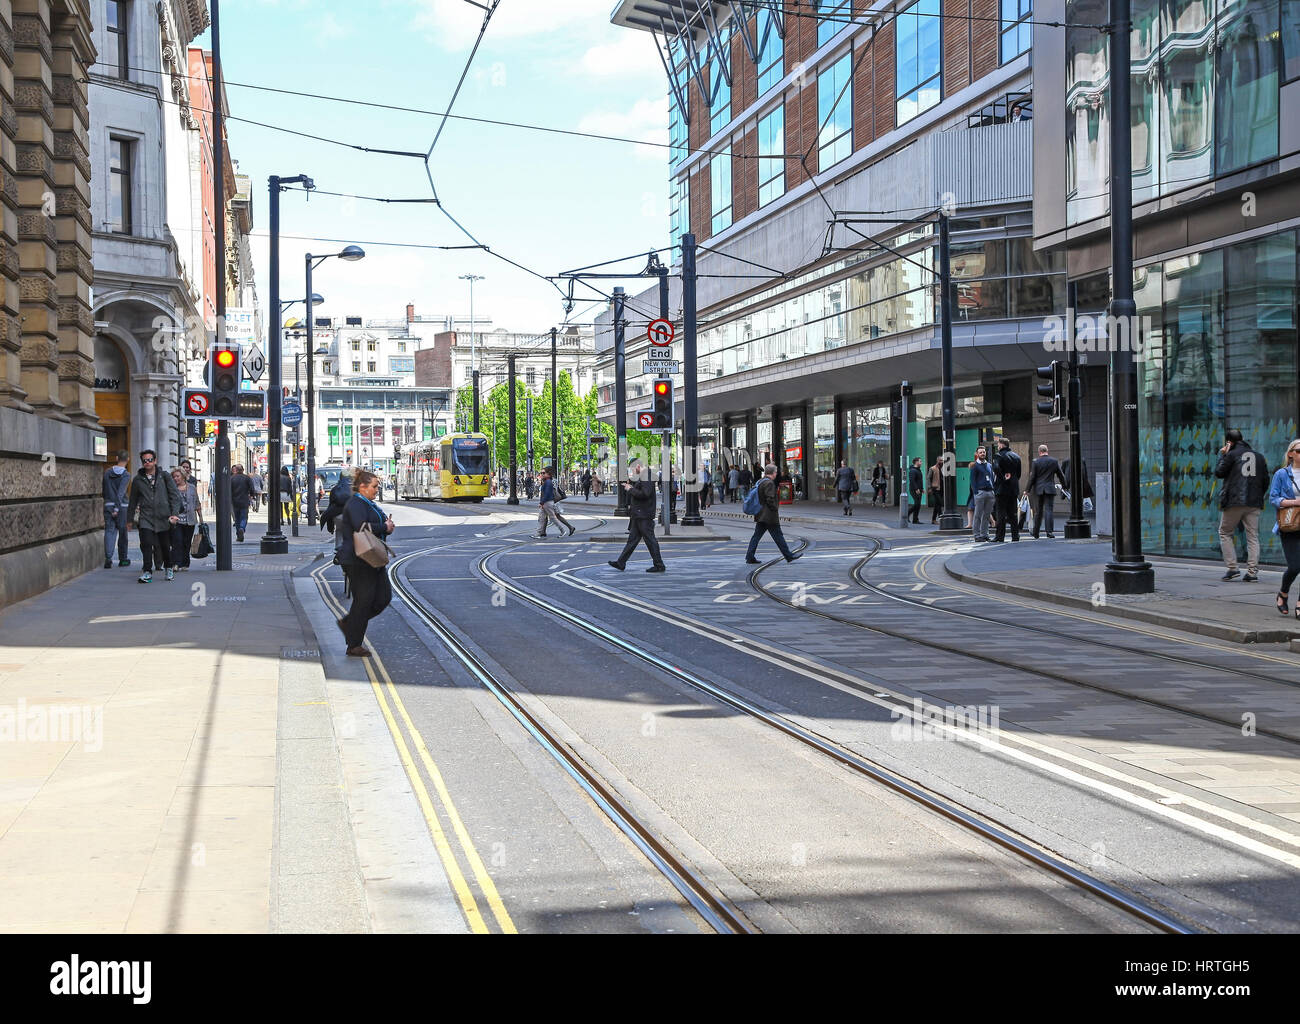 The tramway on Mosley Street Manchester city centre Manchester England UK - Stock Image